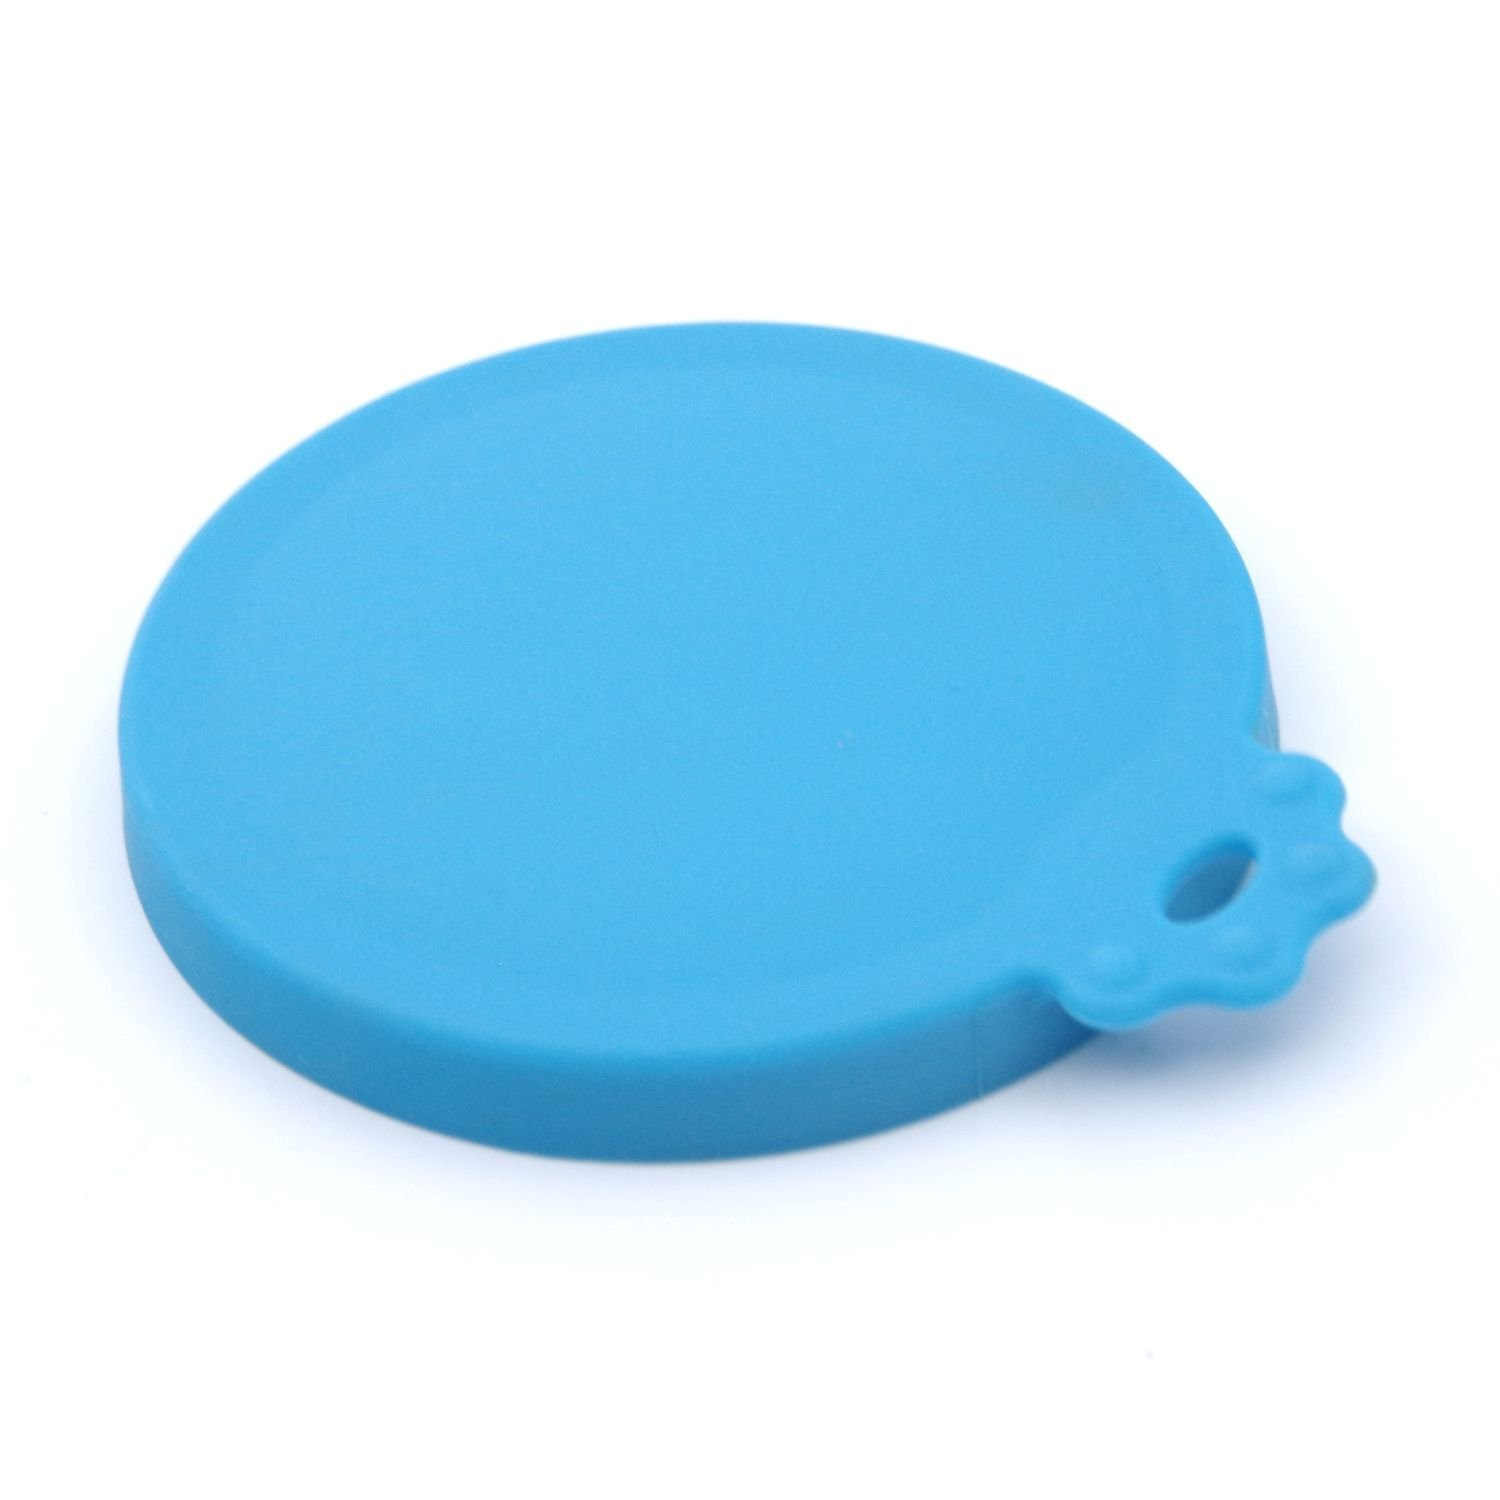 Pet-Food-Can-Lid-Covers-Universal-BPA-Free-Silicone-Can-Tops-Cover-For-Dog-Cat thumbnail 16